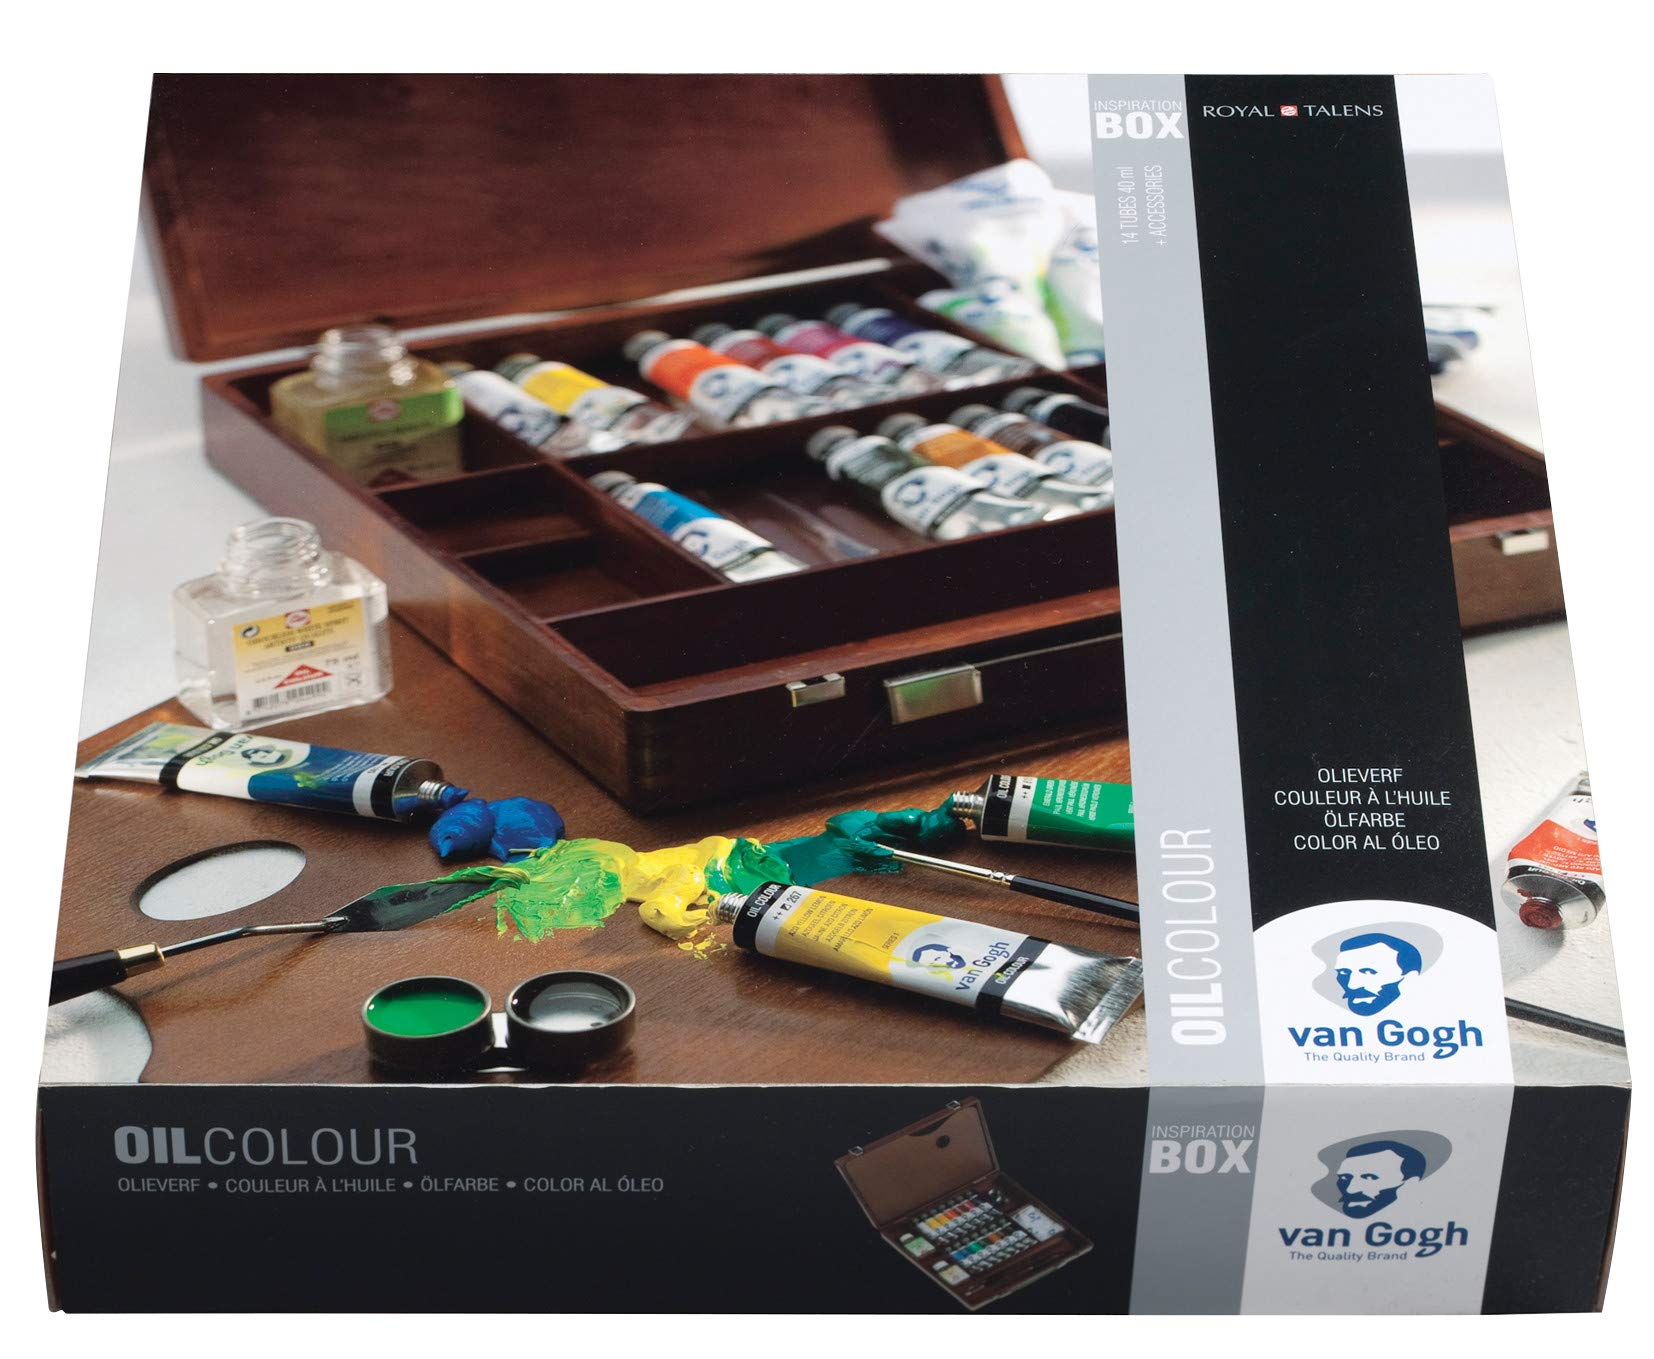 Van Gogh Oil Color Paint, 14x40ml Tubes + Accessories, Wooden Box Inspiration Set by Van Gogh